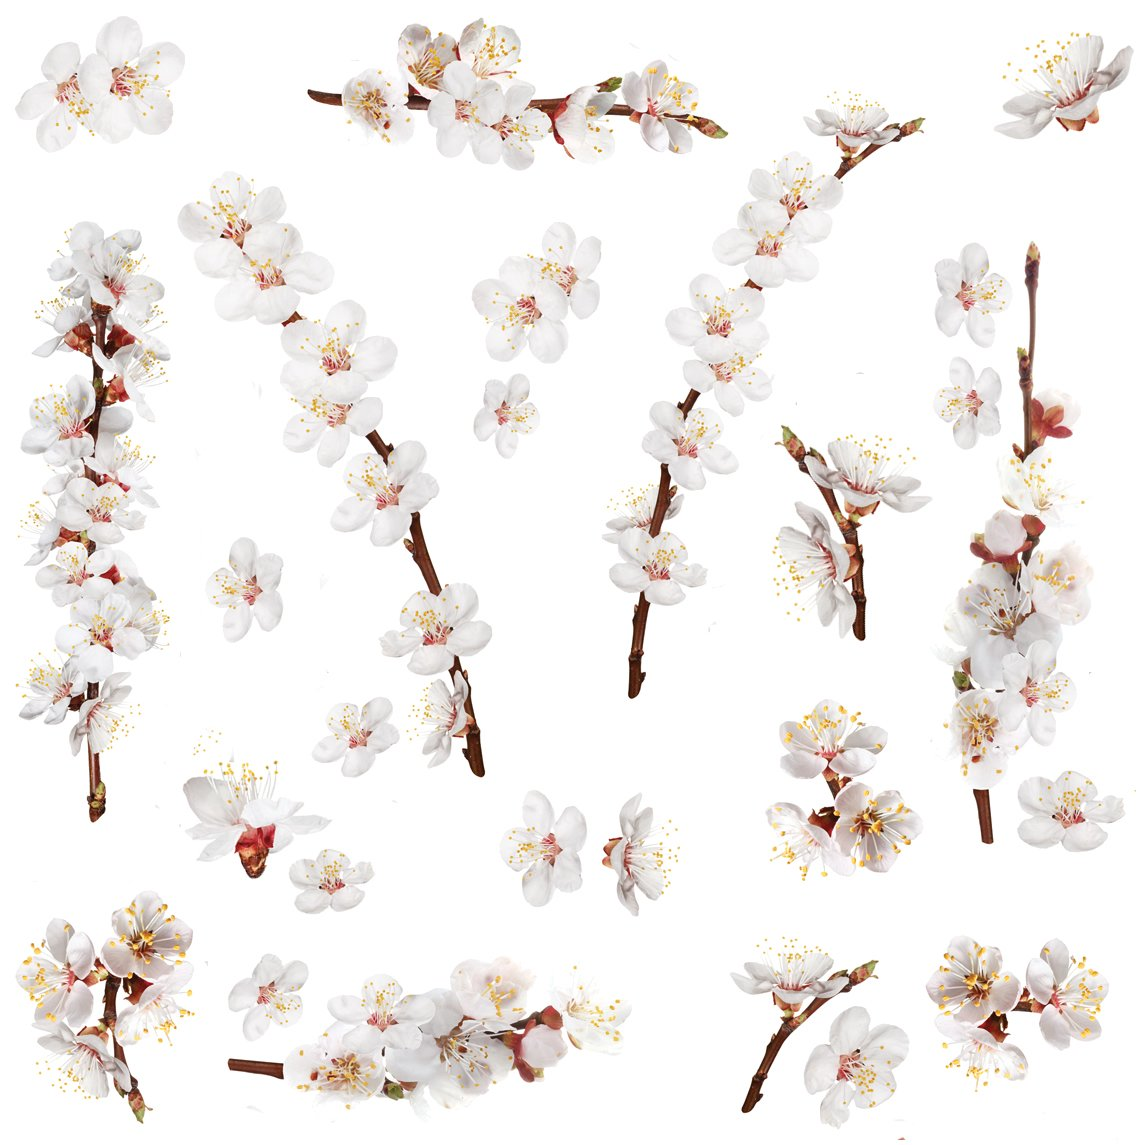 Roommates rmk2085scs dogwood branch peel and stick wall decals 26 roommates rmk2085scs dogwood branch peel and stick wall decals 26 count decorative wall appliques amazon amipublicfo Gallery